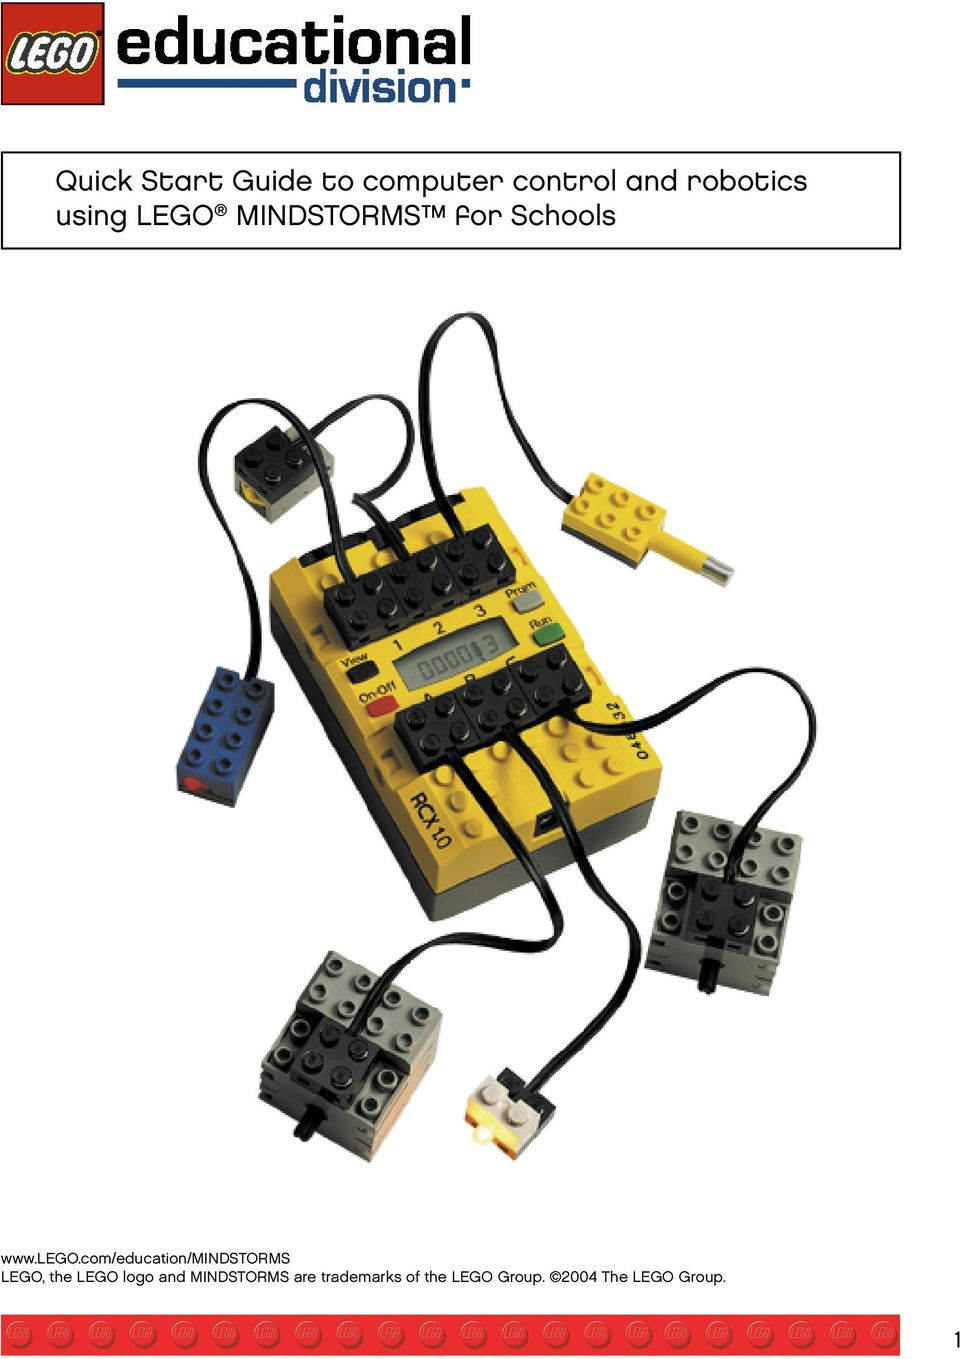 com/education/mindstorms LEGO, the LEGO logo and